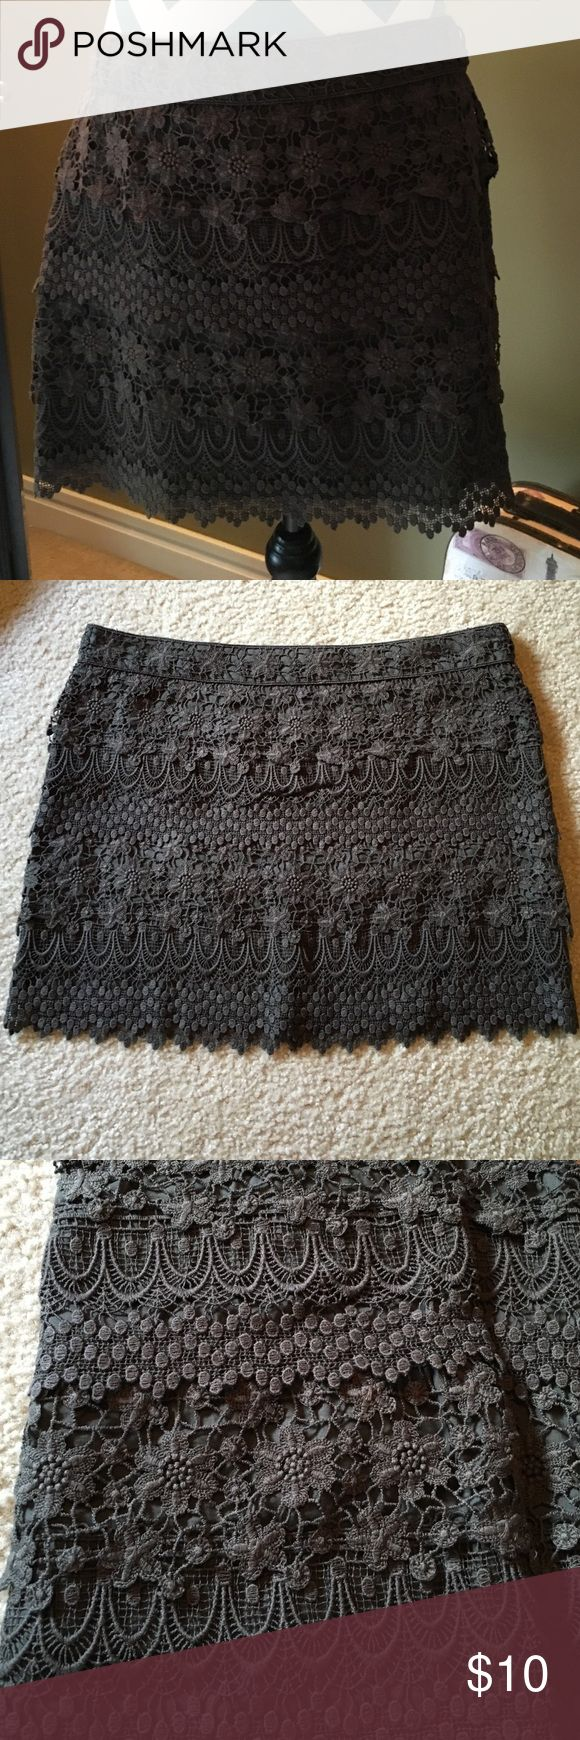 Gorgeous Lace Skirt Brown skirt with layers of crochet throughout. Worn a couple of times. American Eagle Outfitters Skirts Mini